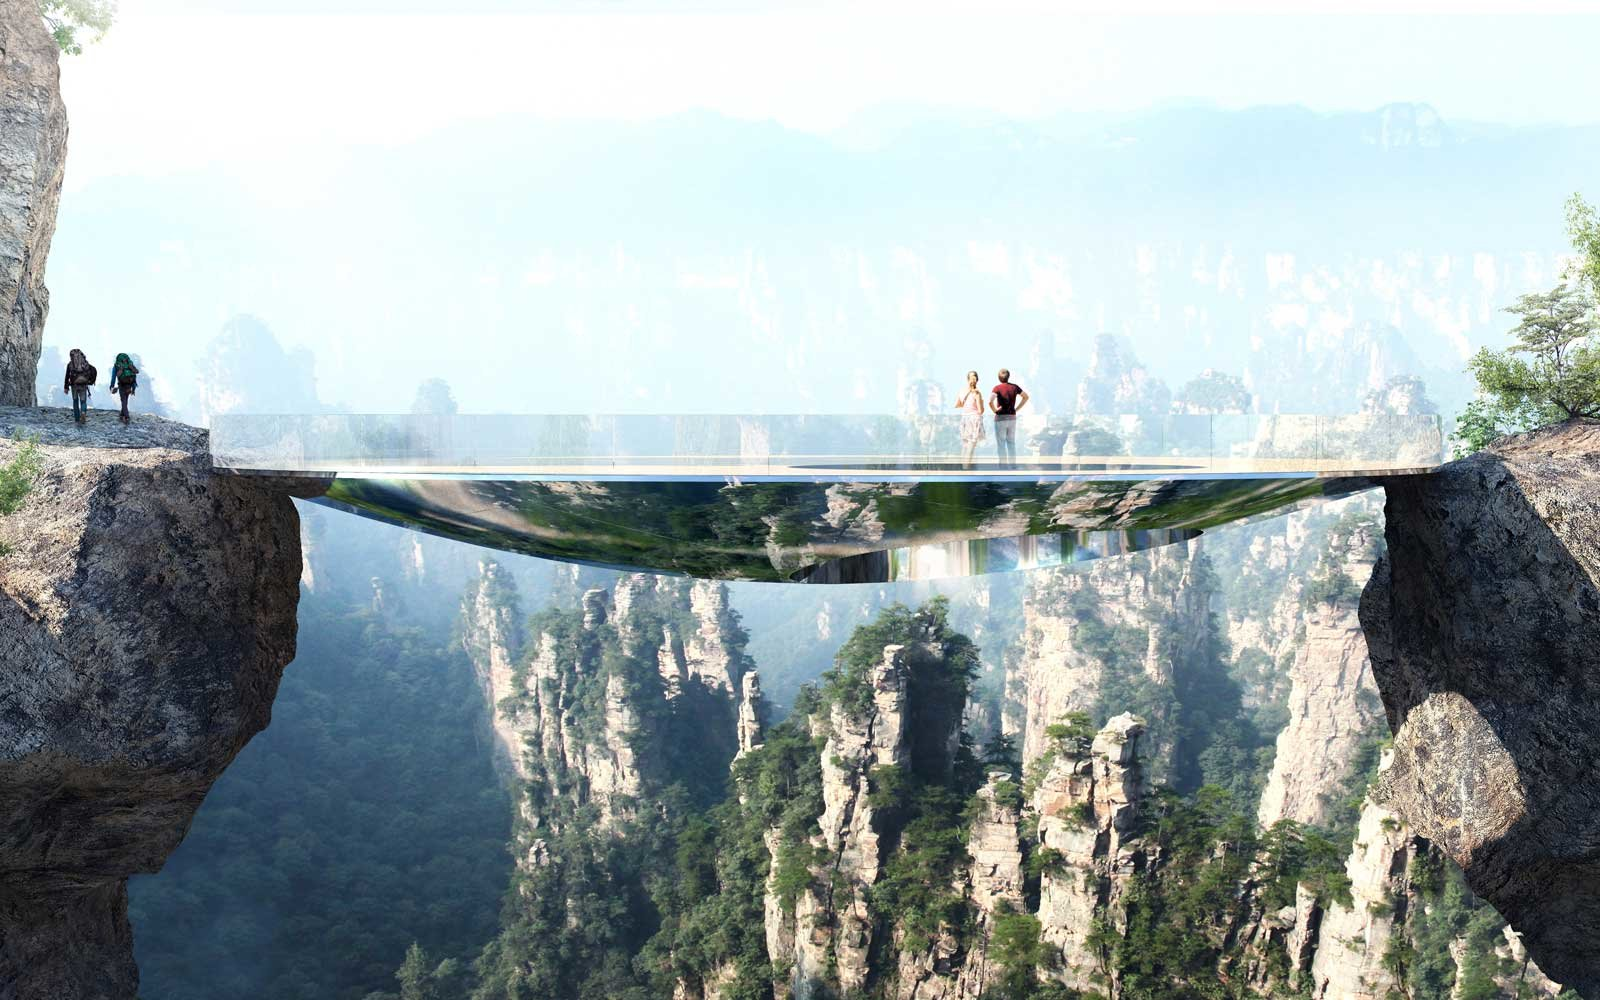 China's Mirror Bridge